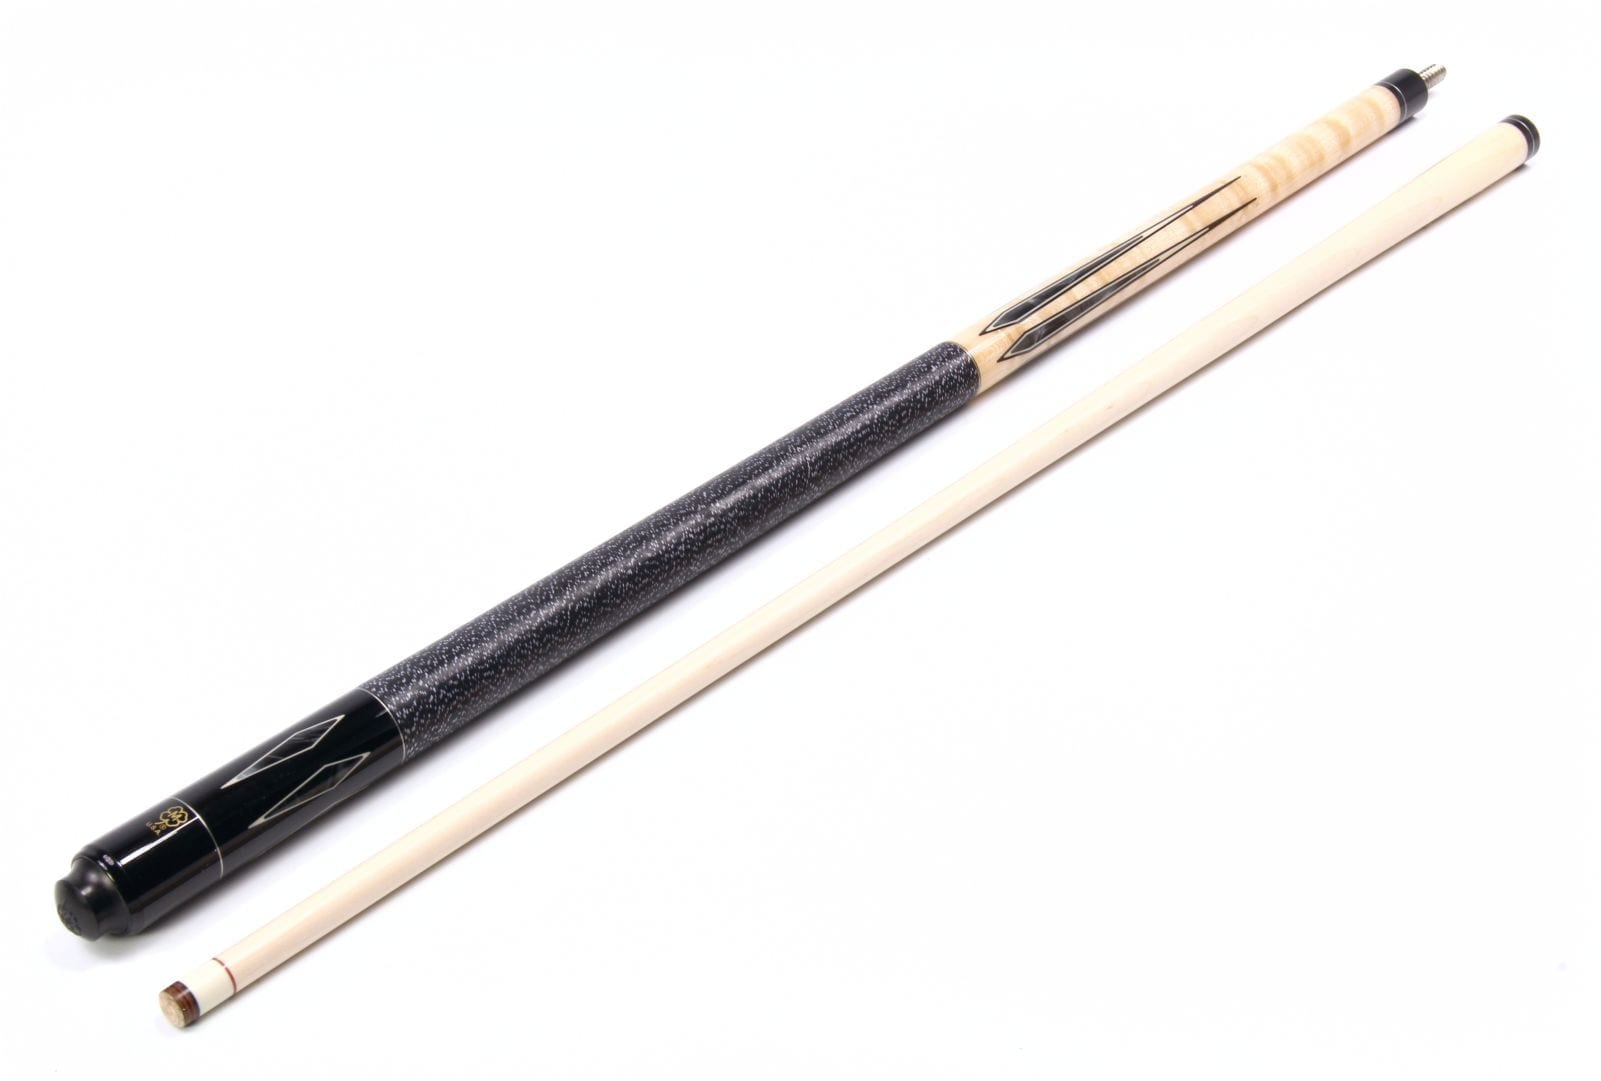 G326A McDermott BLACK PEARL Hand Crafted G-Series American Pool Cue 13mm tip